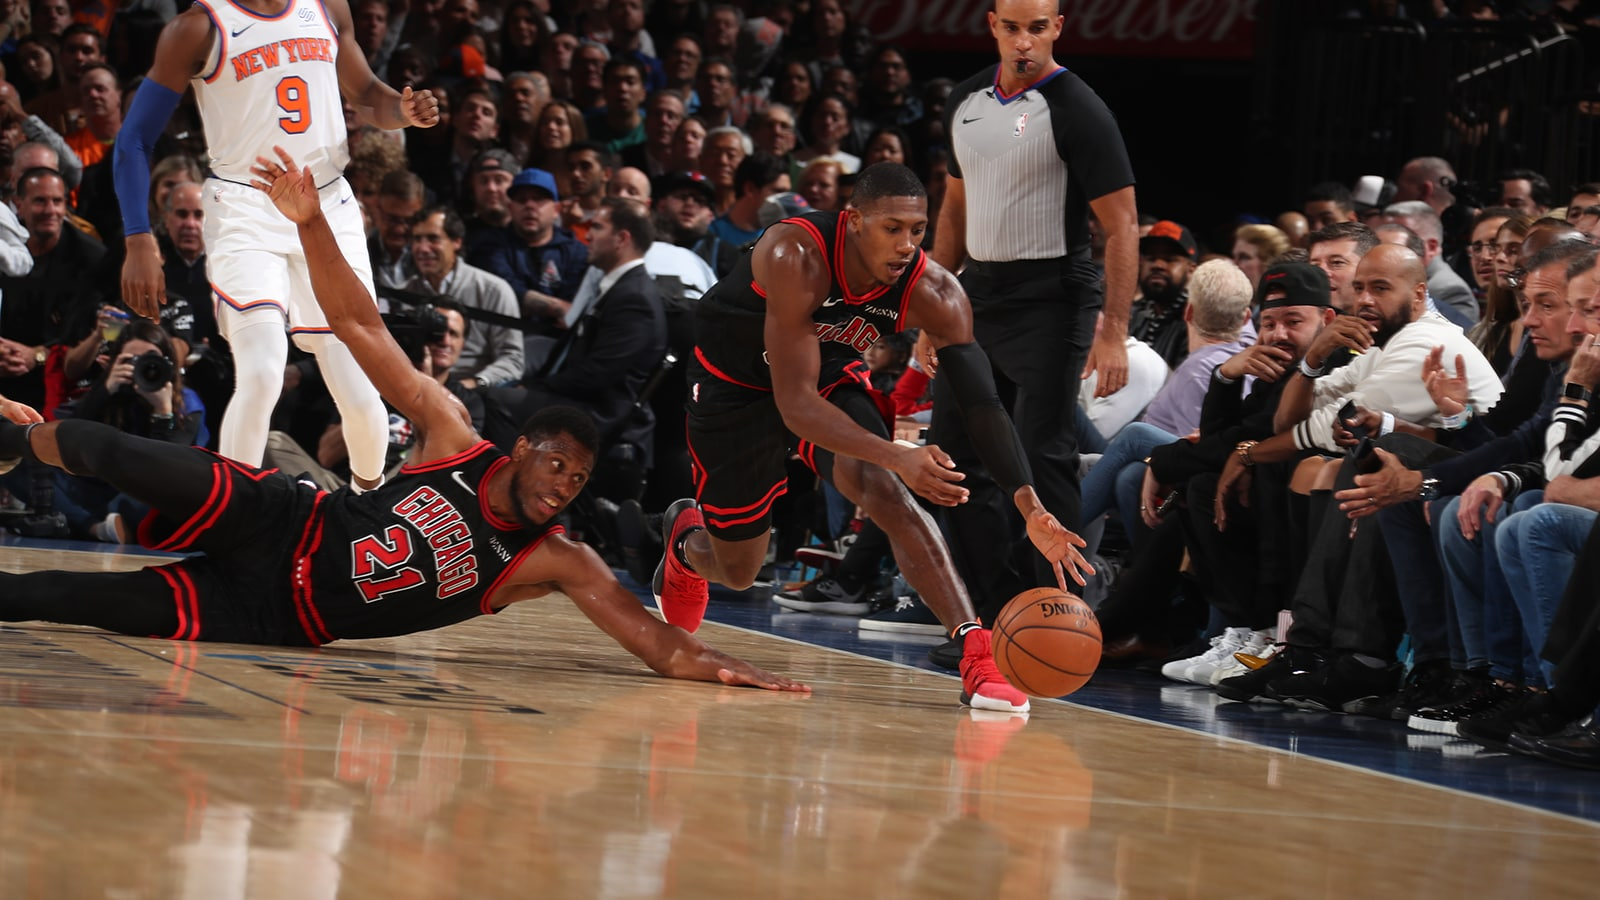 Kris Dunn going in after a loose ball